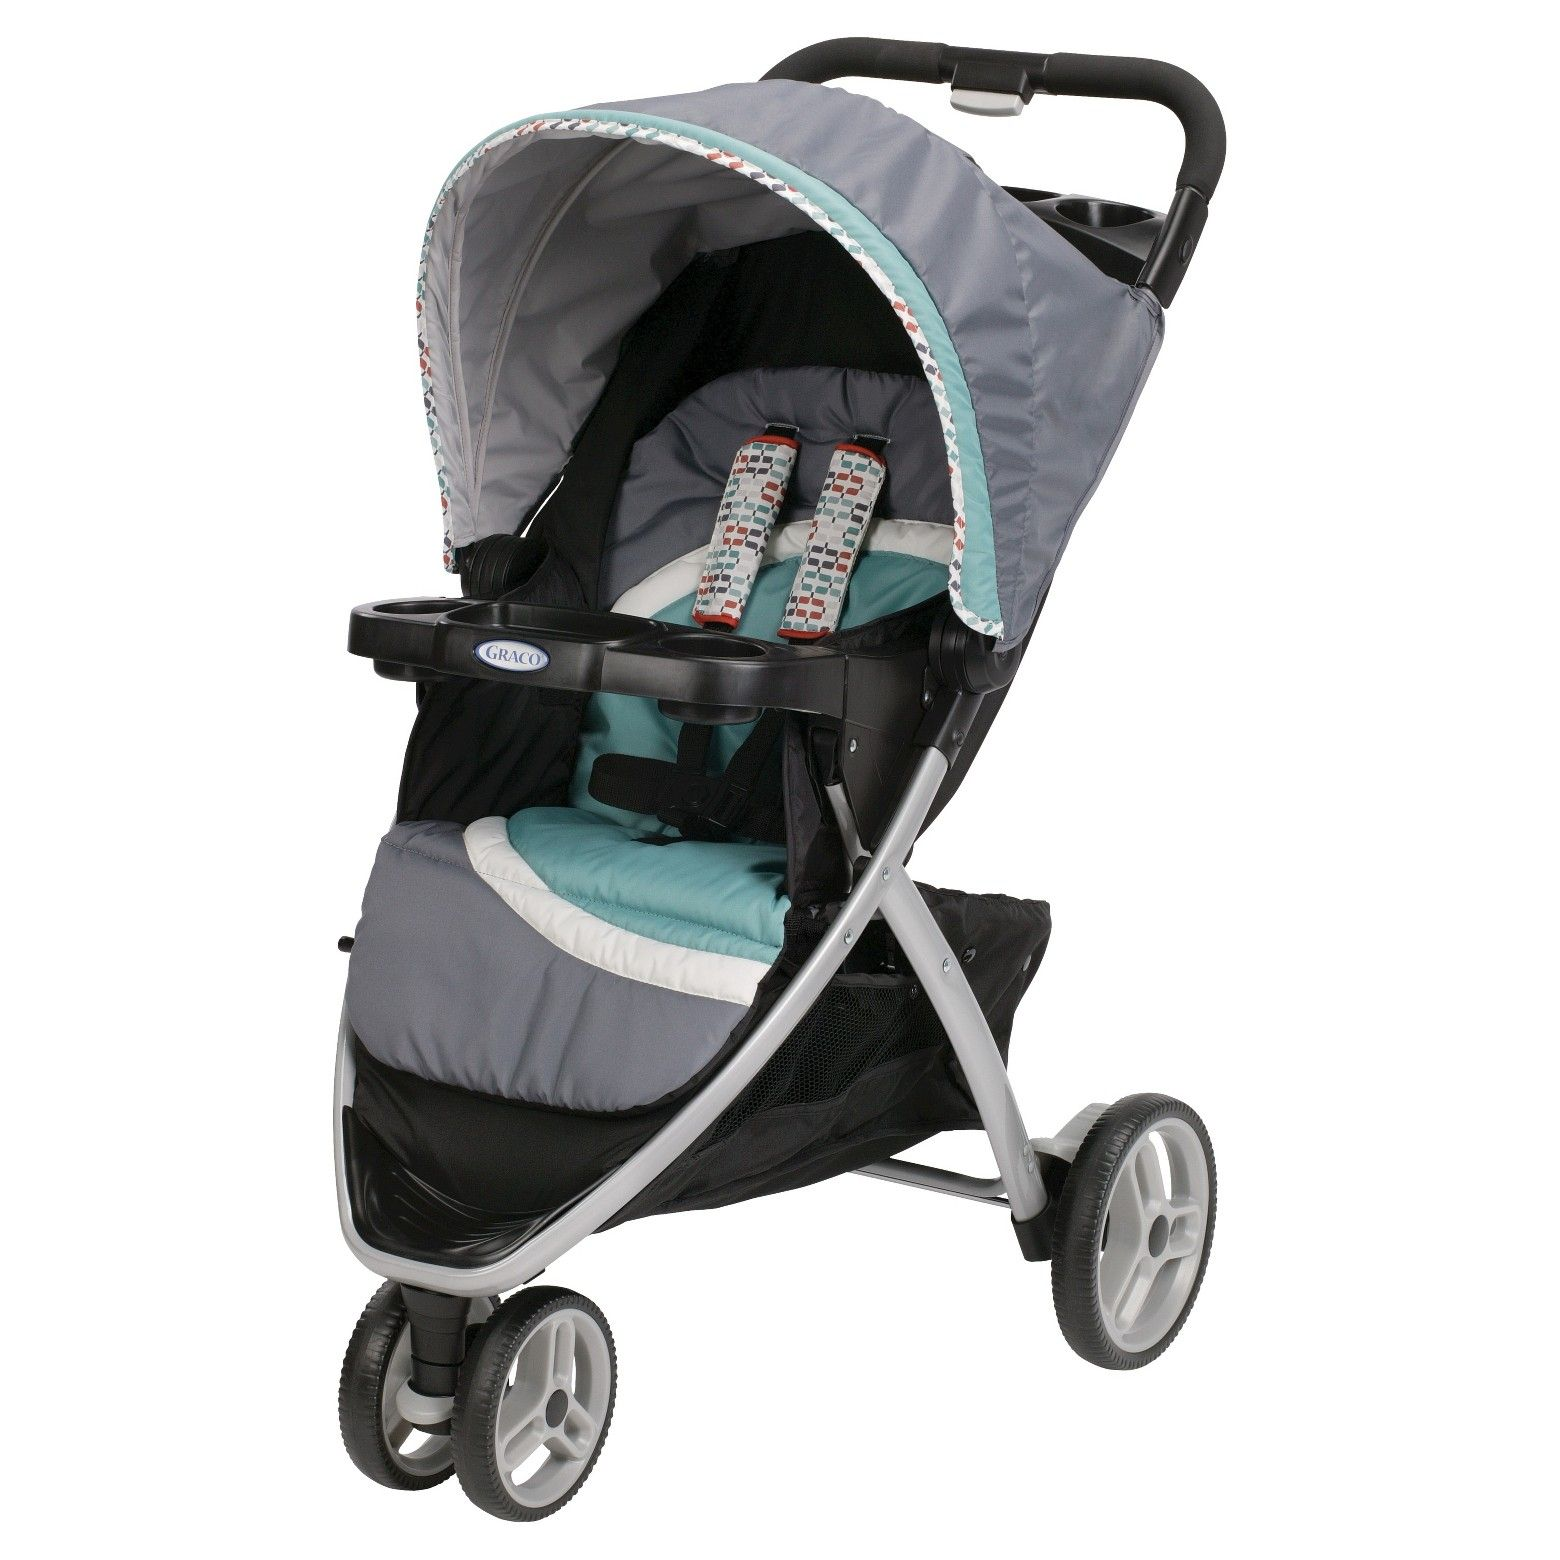 Graco's Pace Click Connect Stroller — Compatable with